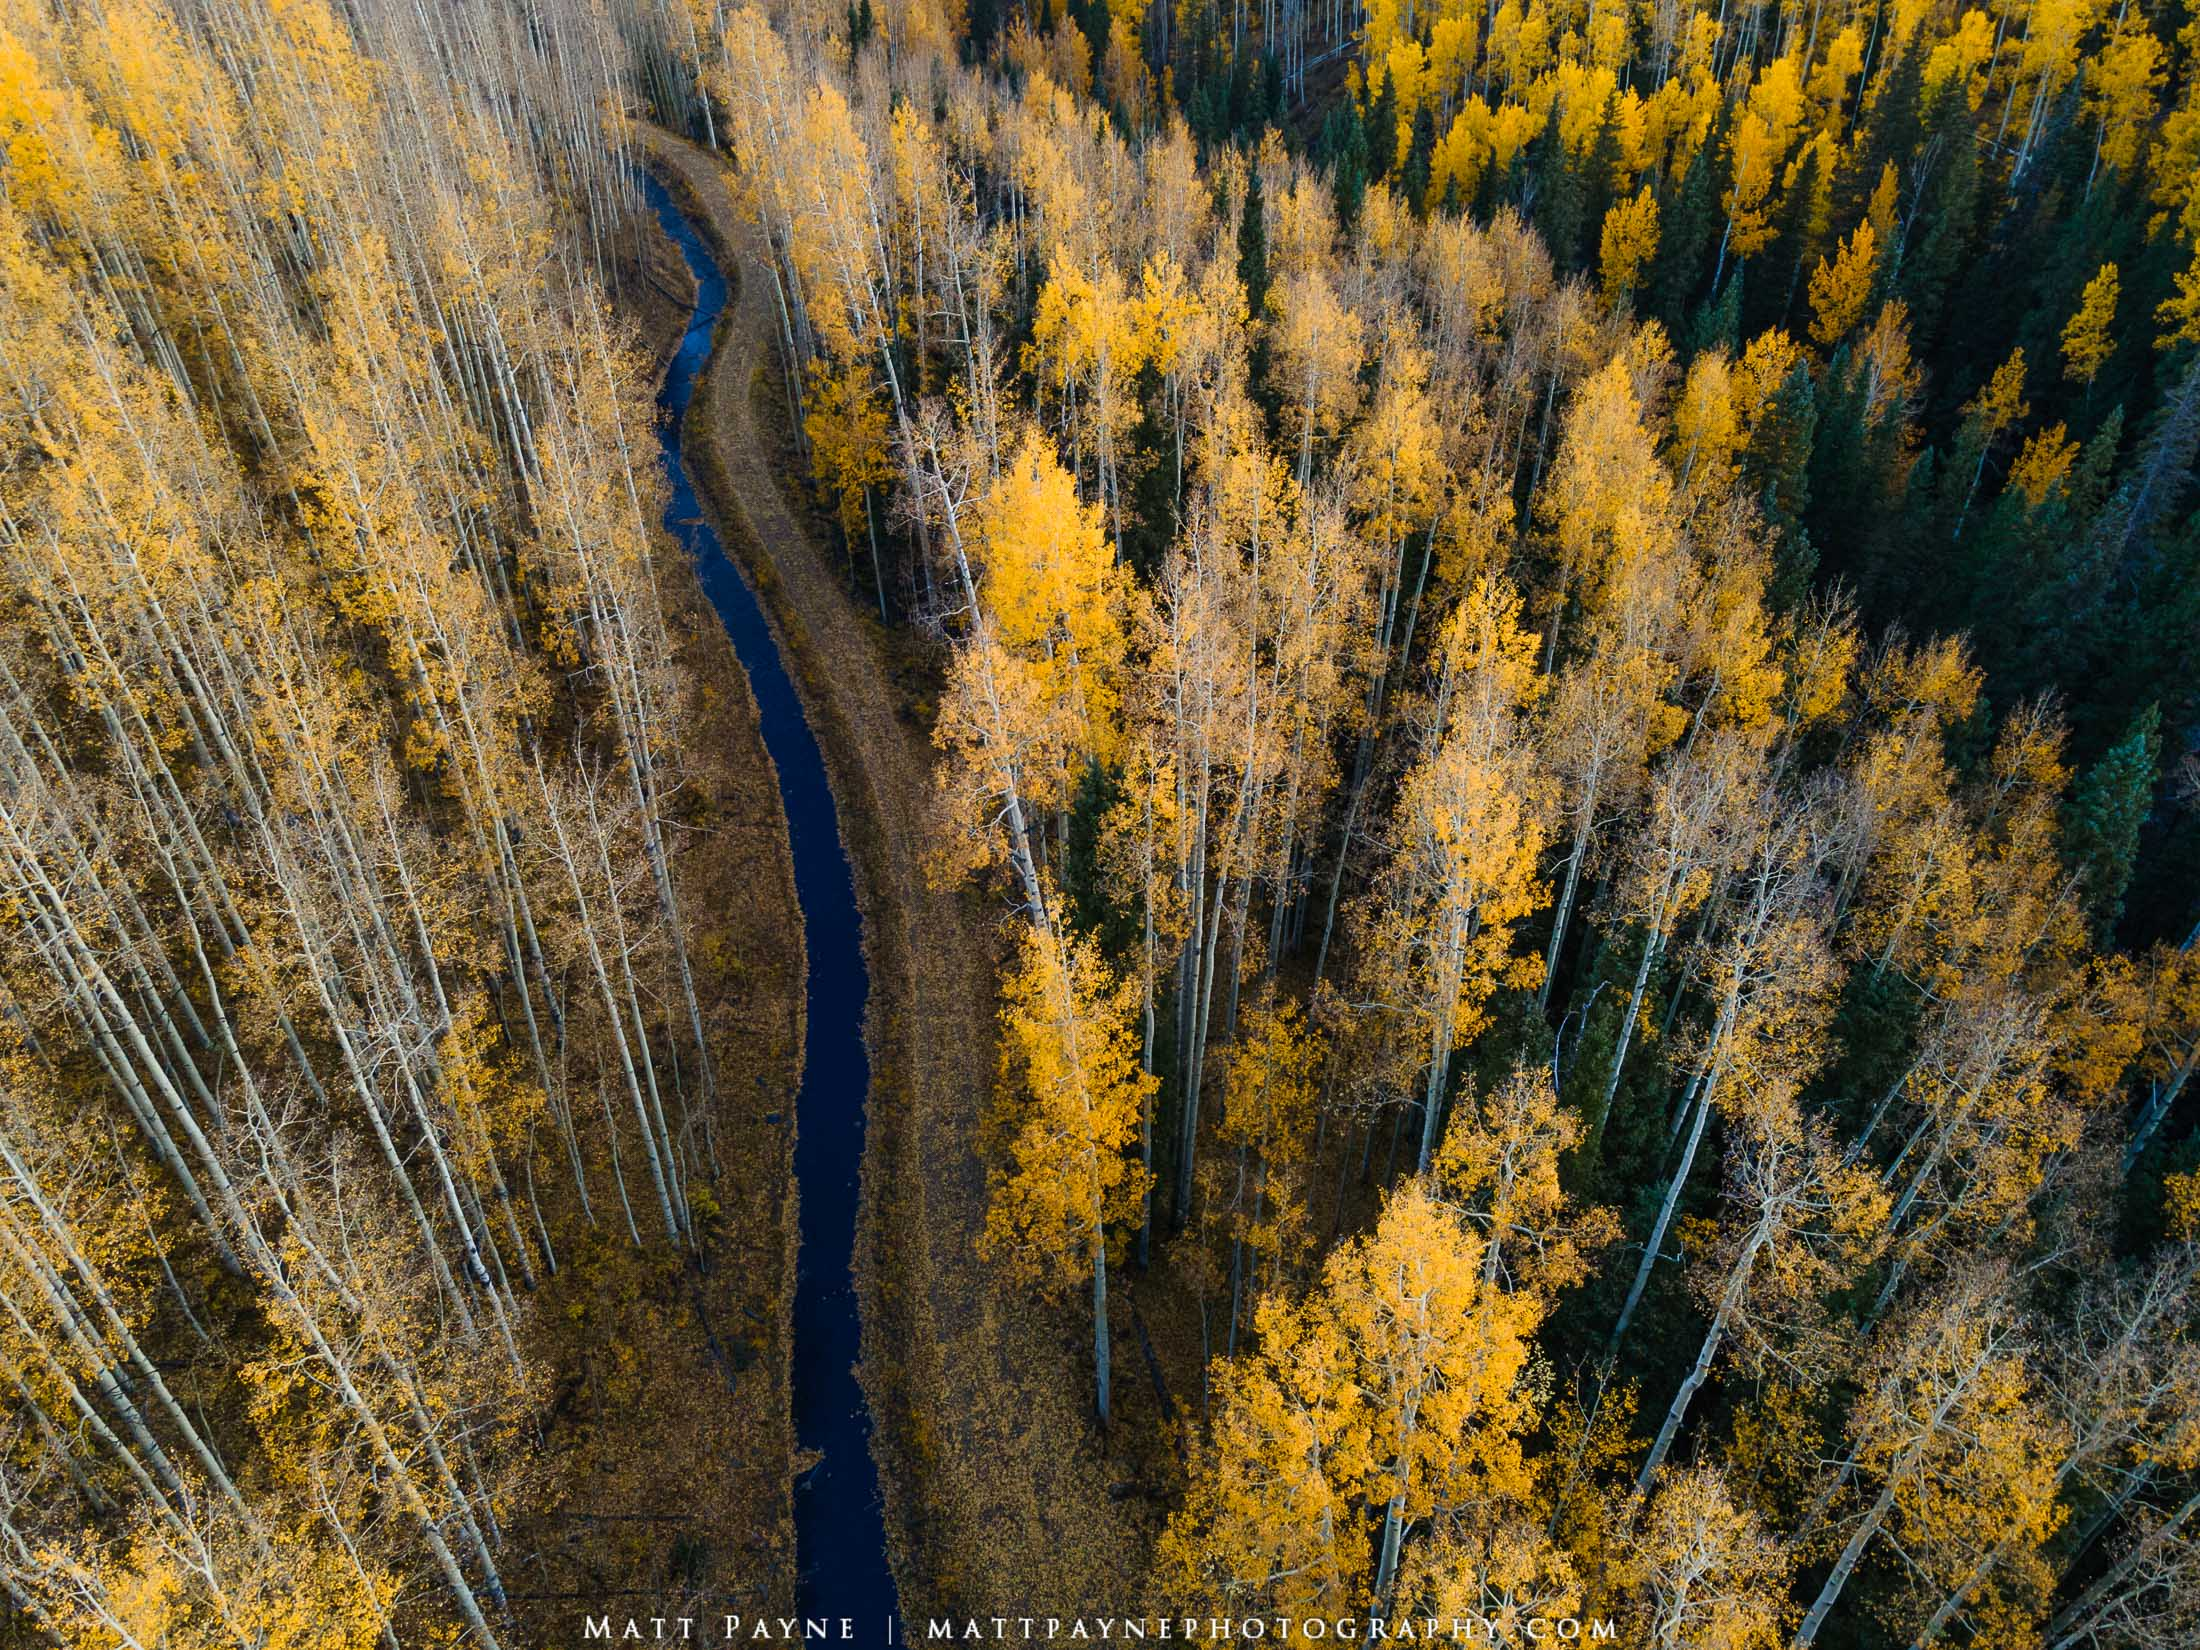 A cattle ditch meanders through vibrant autumn aspen trees in Southwest Colorado. Photo © copyright by Matt Payne.